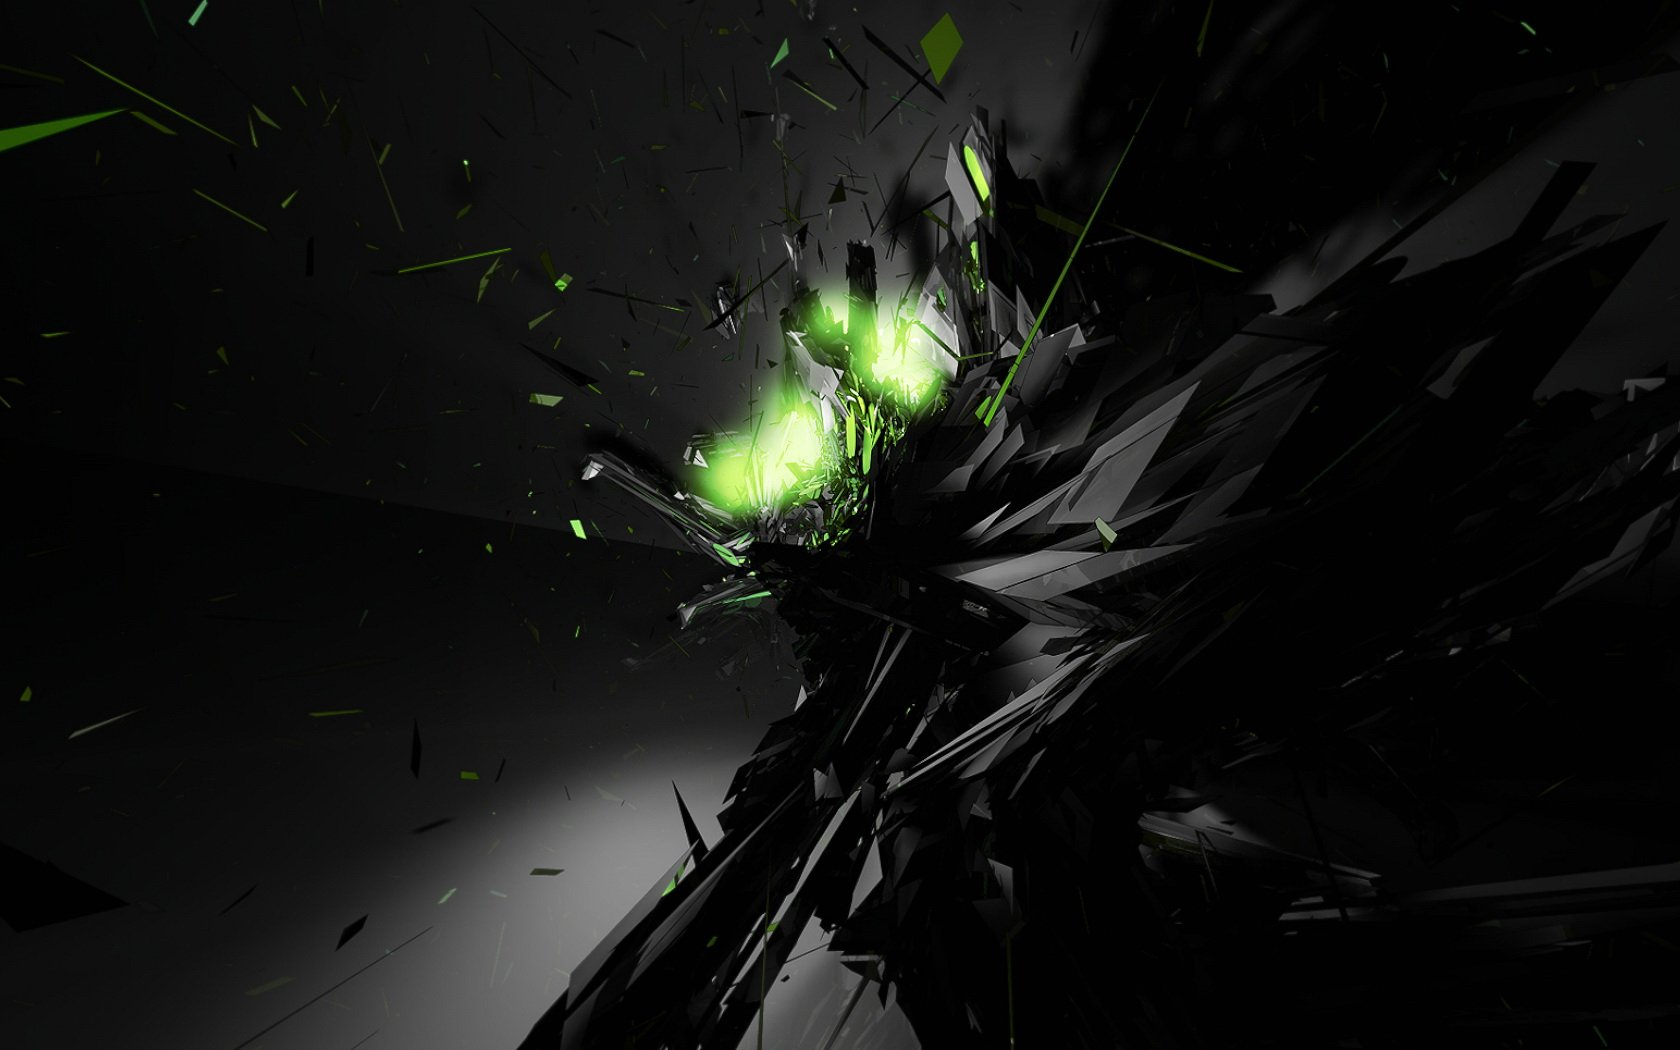 Dark Explode Abstract Wallpapers HD Wallpapers 1680x1050